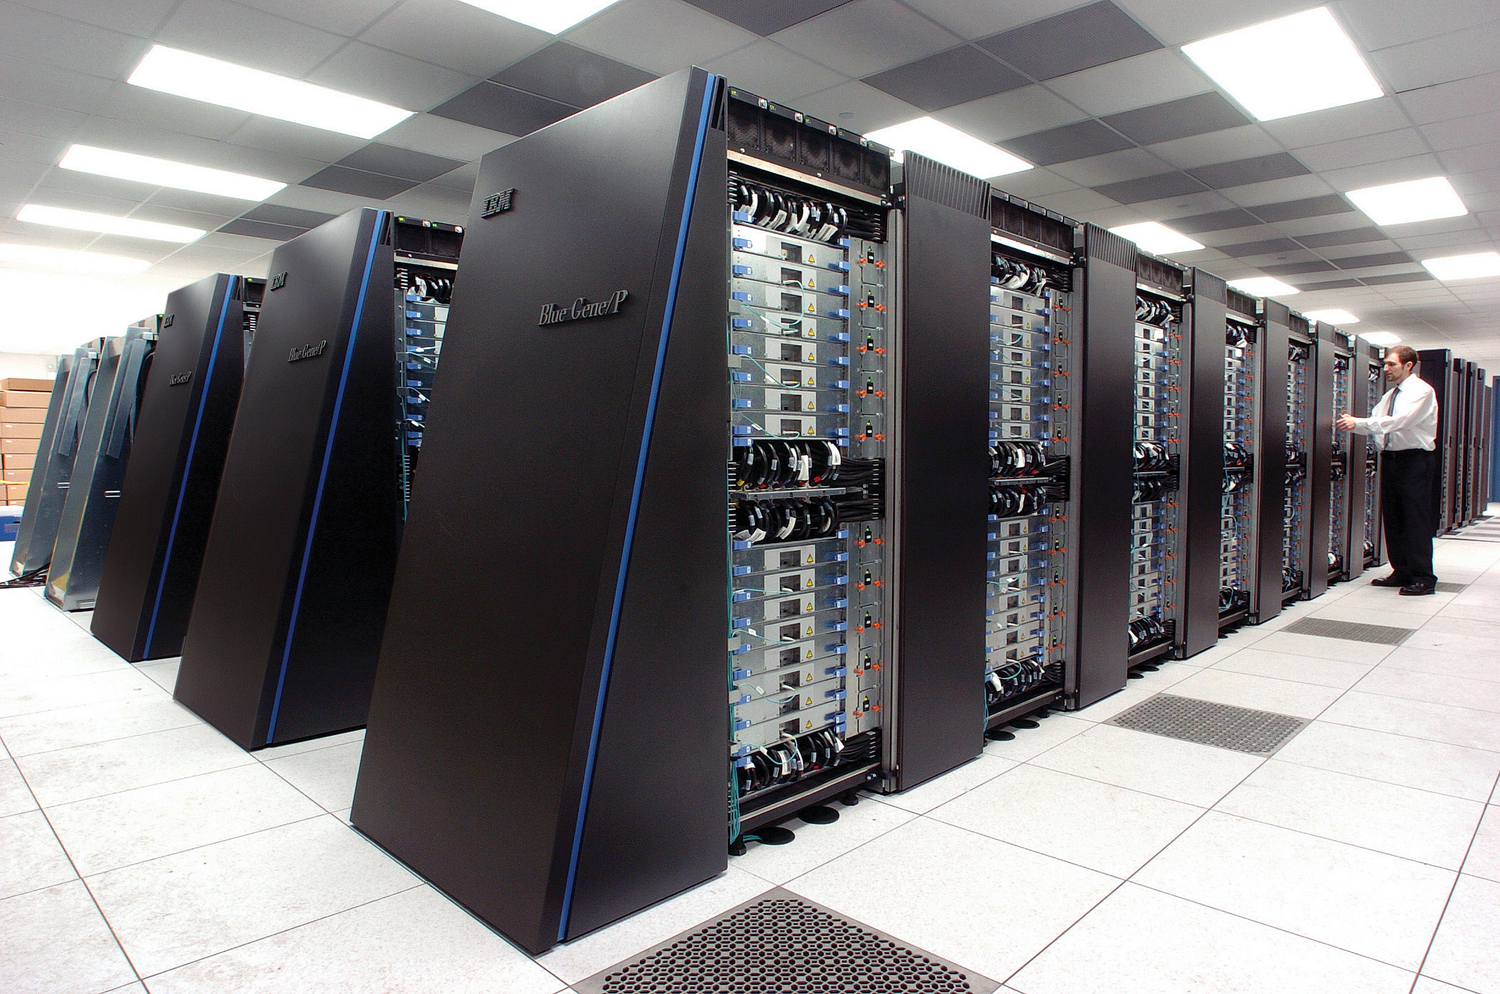 The Blue Gene/P supercomputer at Argonne National Lab runs over 250,000 processors at room temperature, grouped in 72 racks/cabinets connected by a high-speed, optical network